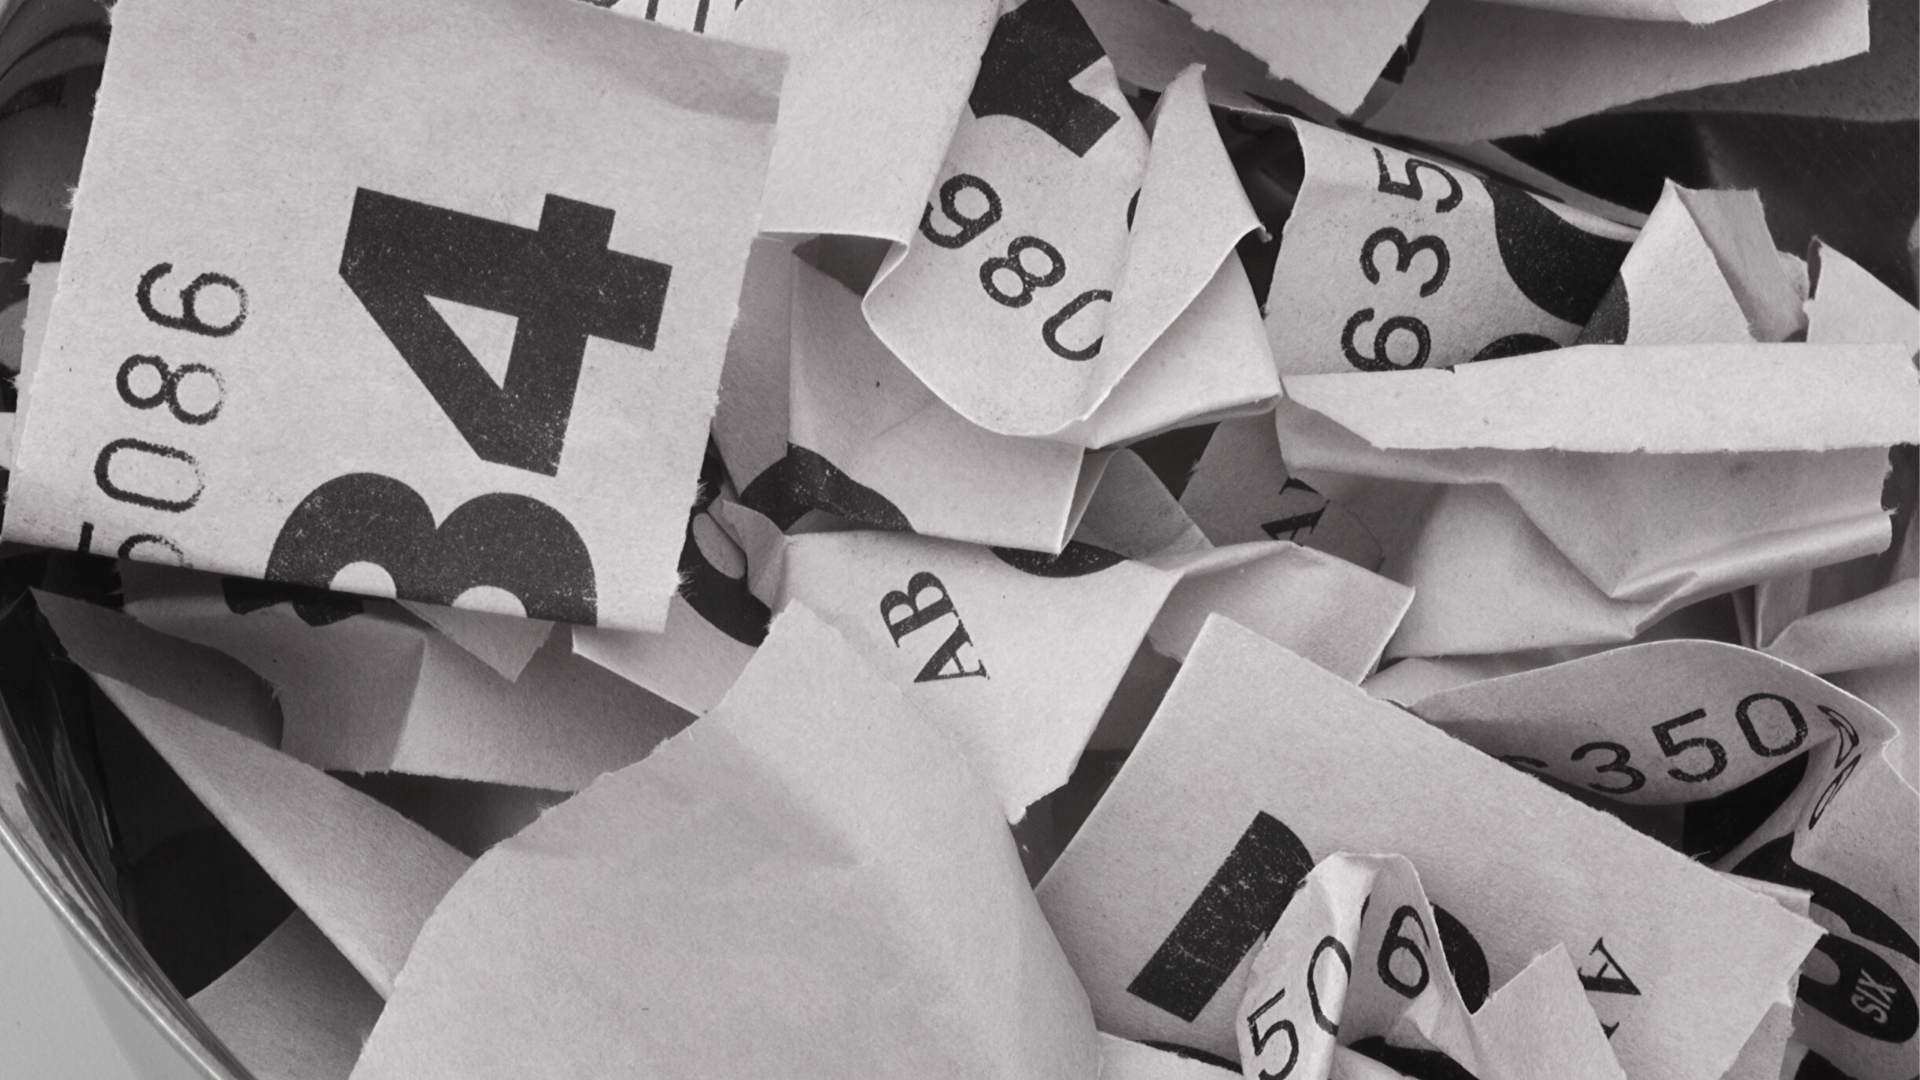 Close-up black and white photo of crinkled queuing tickets